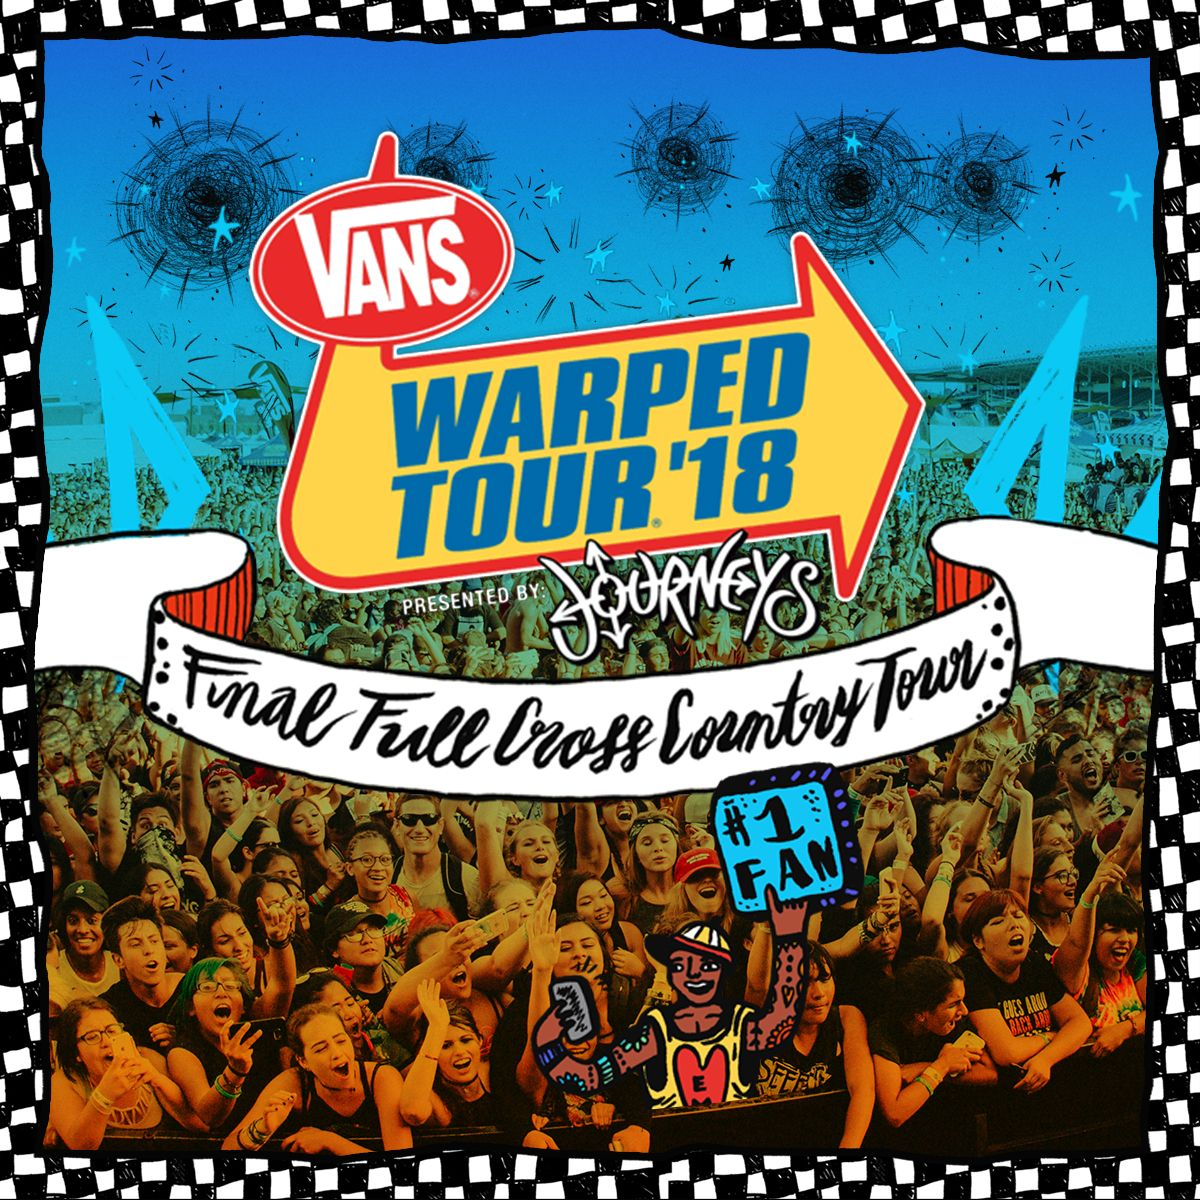 Warped Tour Has Been Around Since 1995 And This Summer Marks The Last Tour This Tour Consists Of Many Differen Vans Warped Tour Warped Tour Warped Tour Lineup